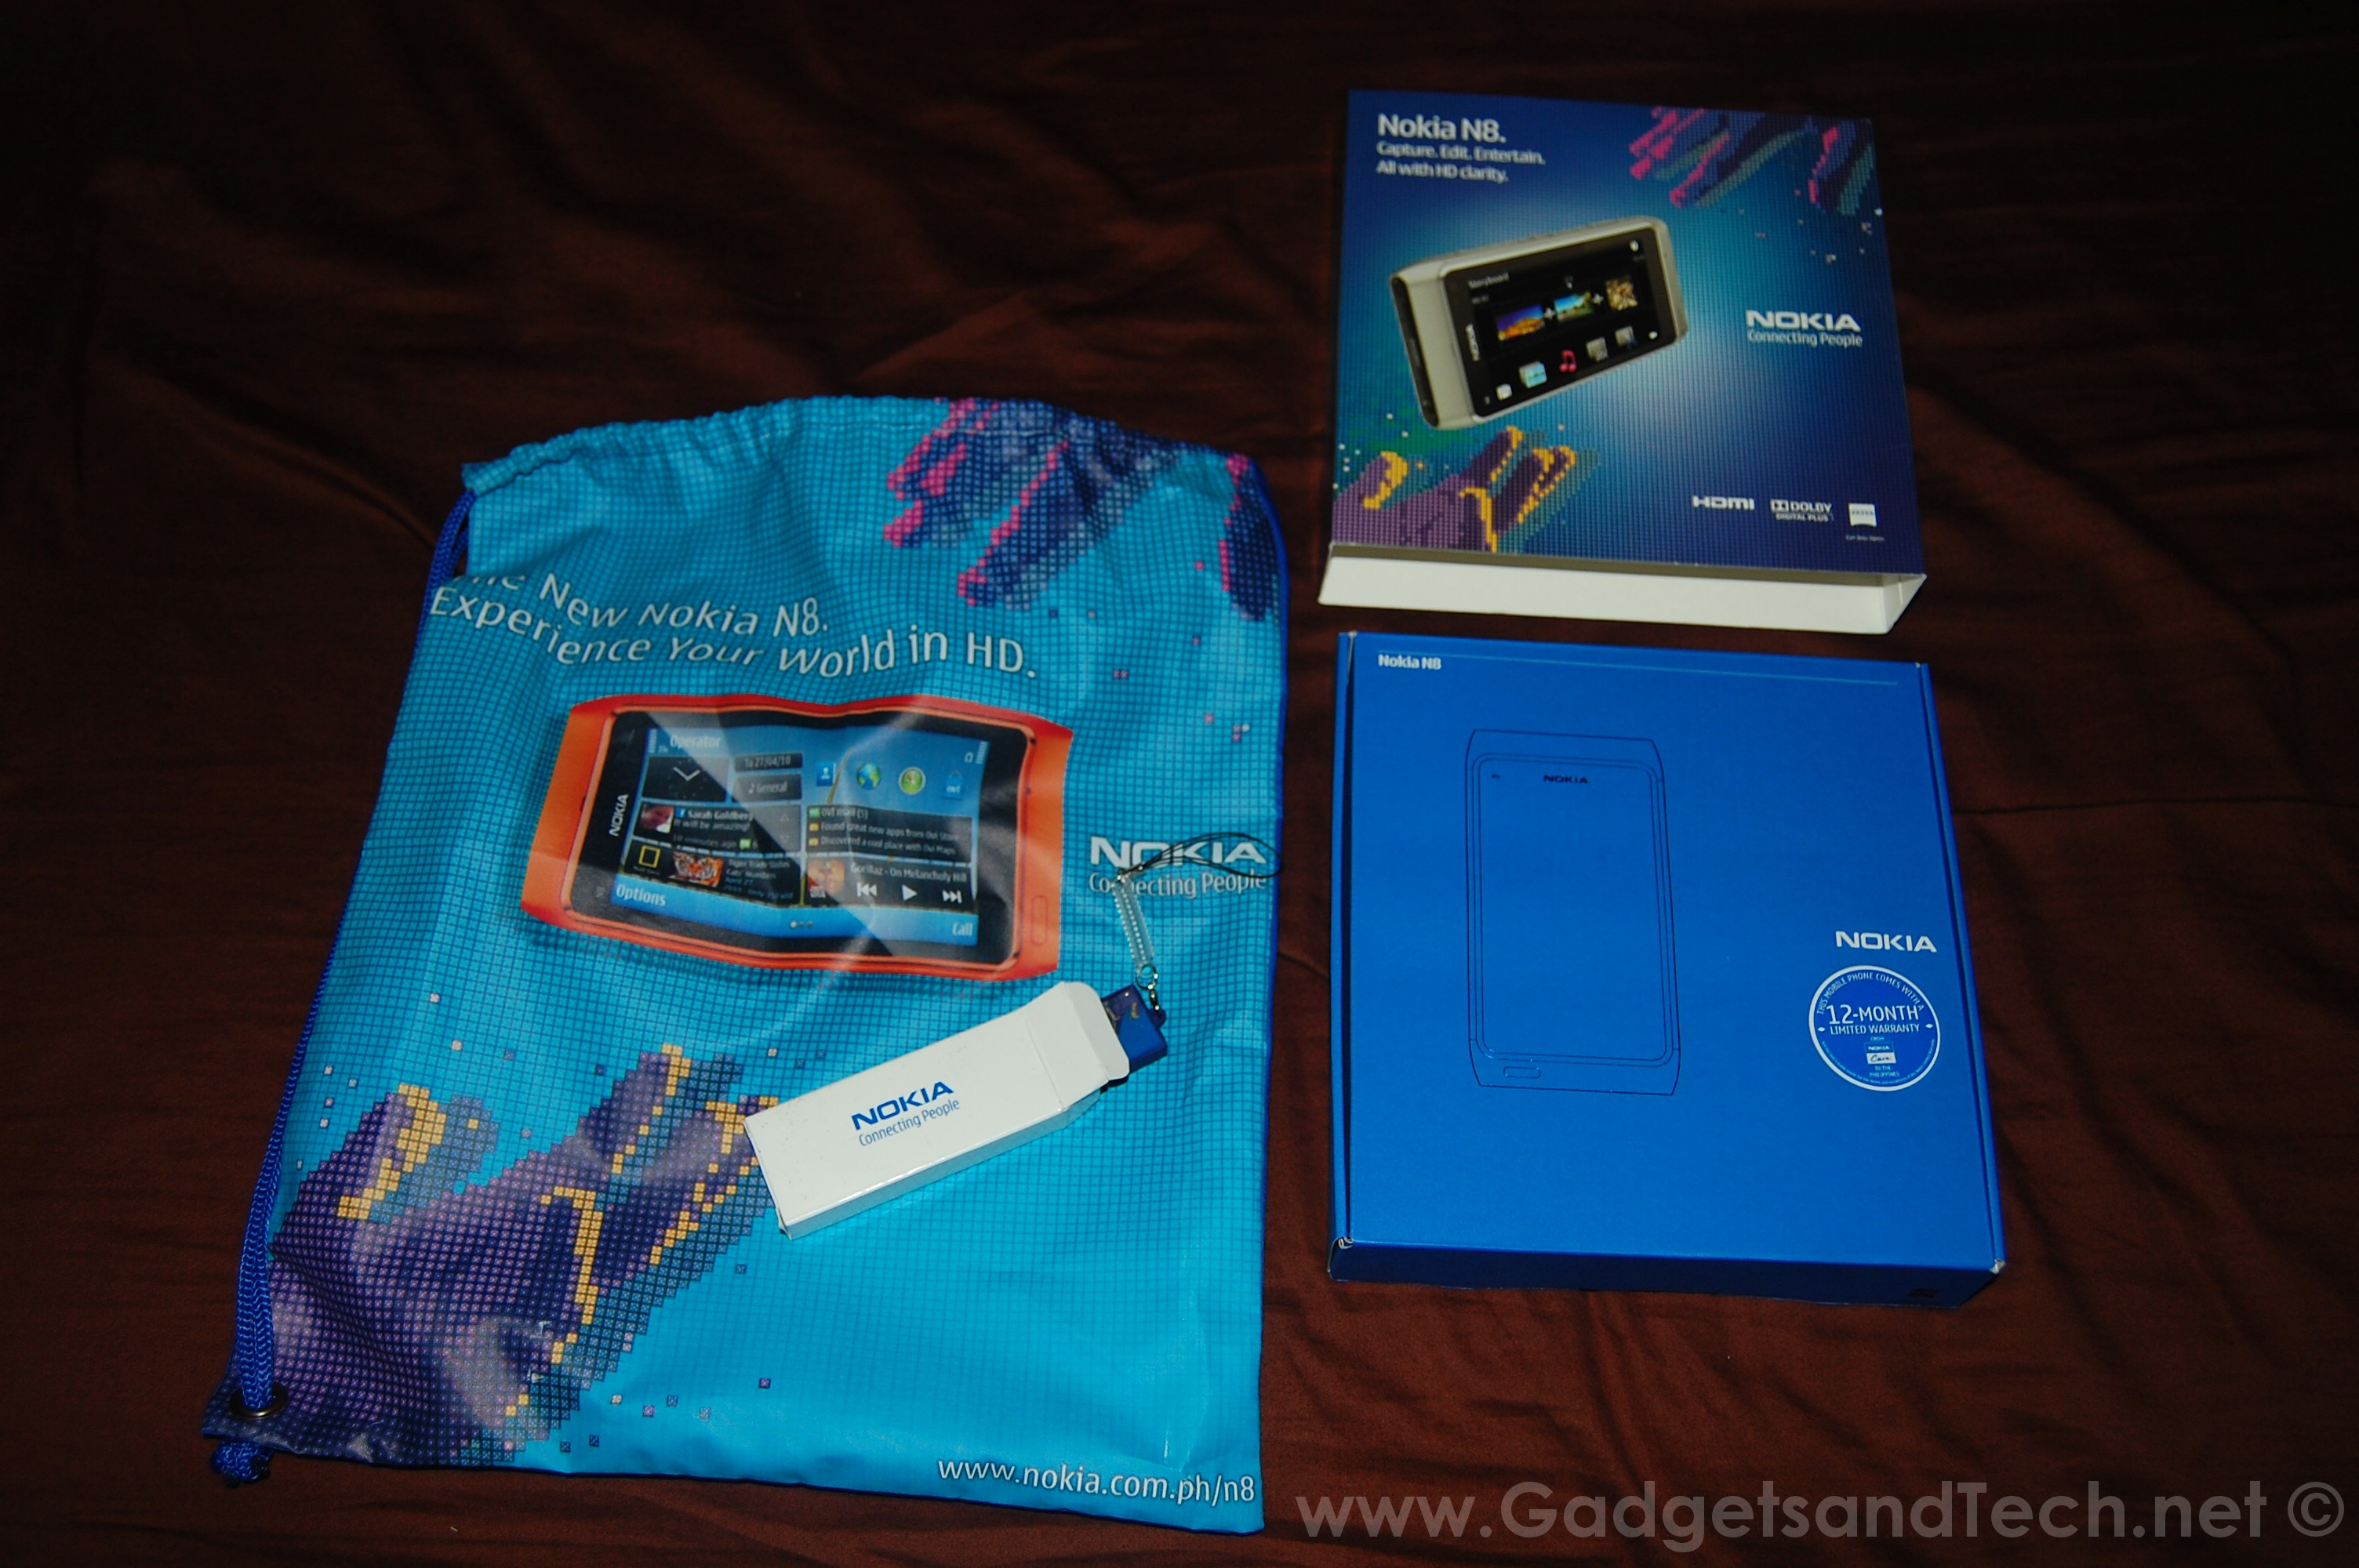 Gadgets and Tech's Nokia N8 Unboxing | Pre-Ordered in the